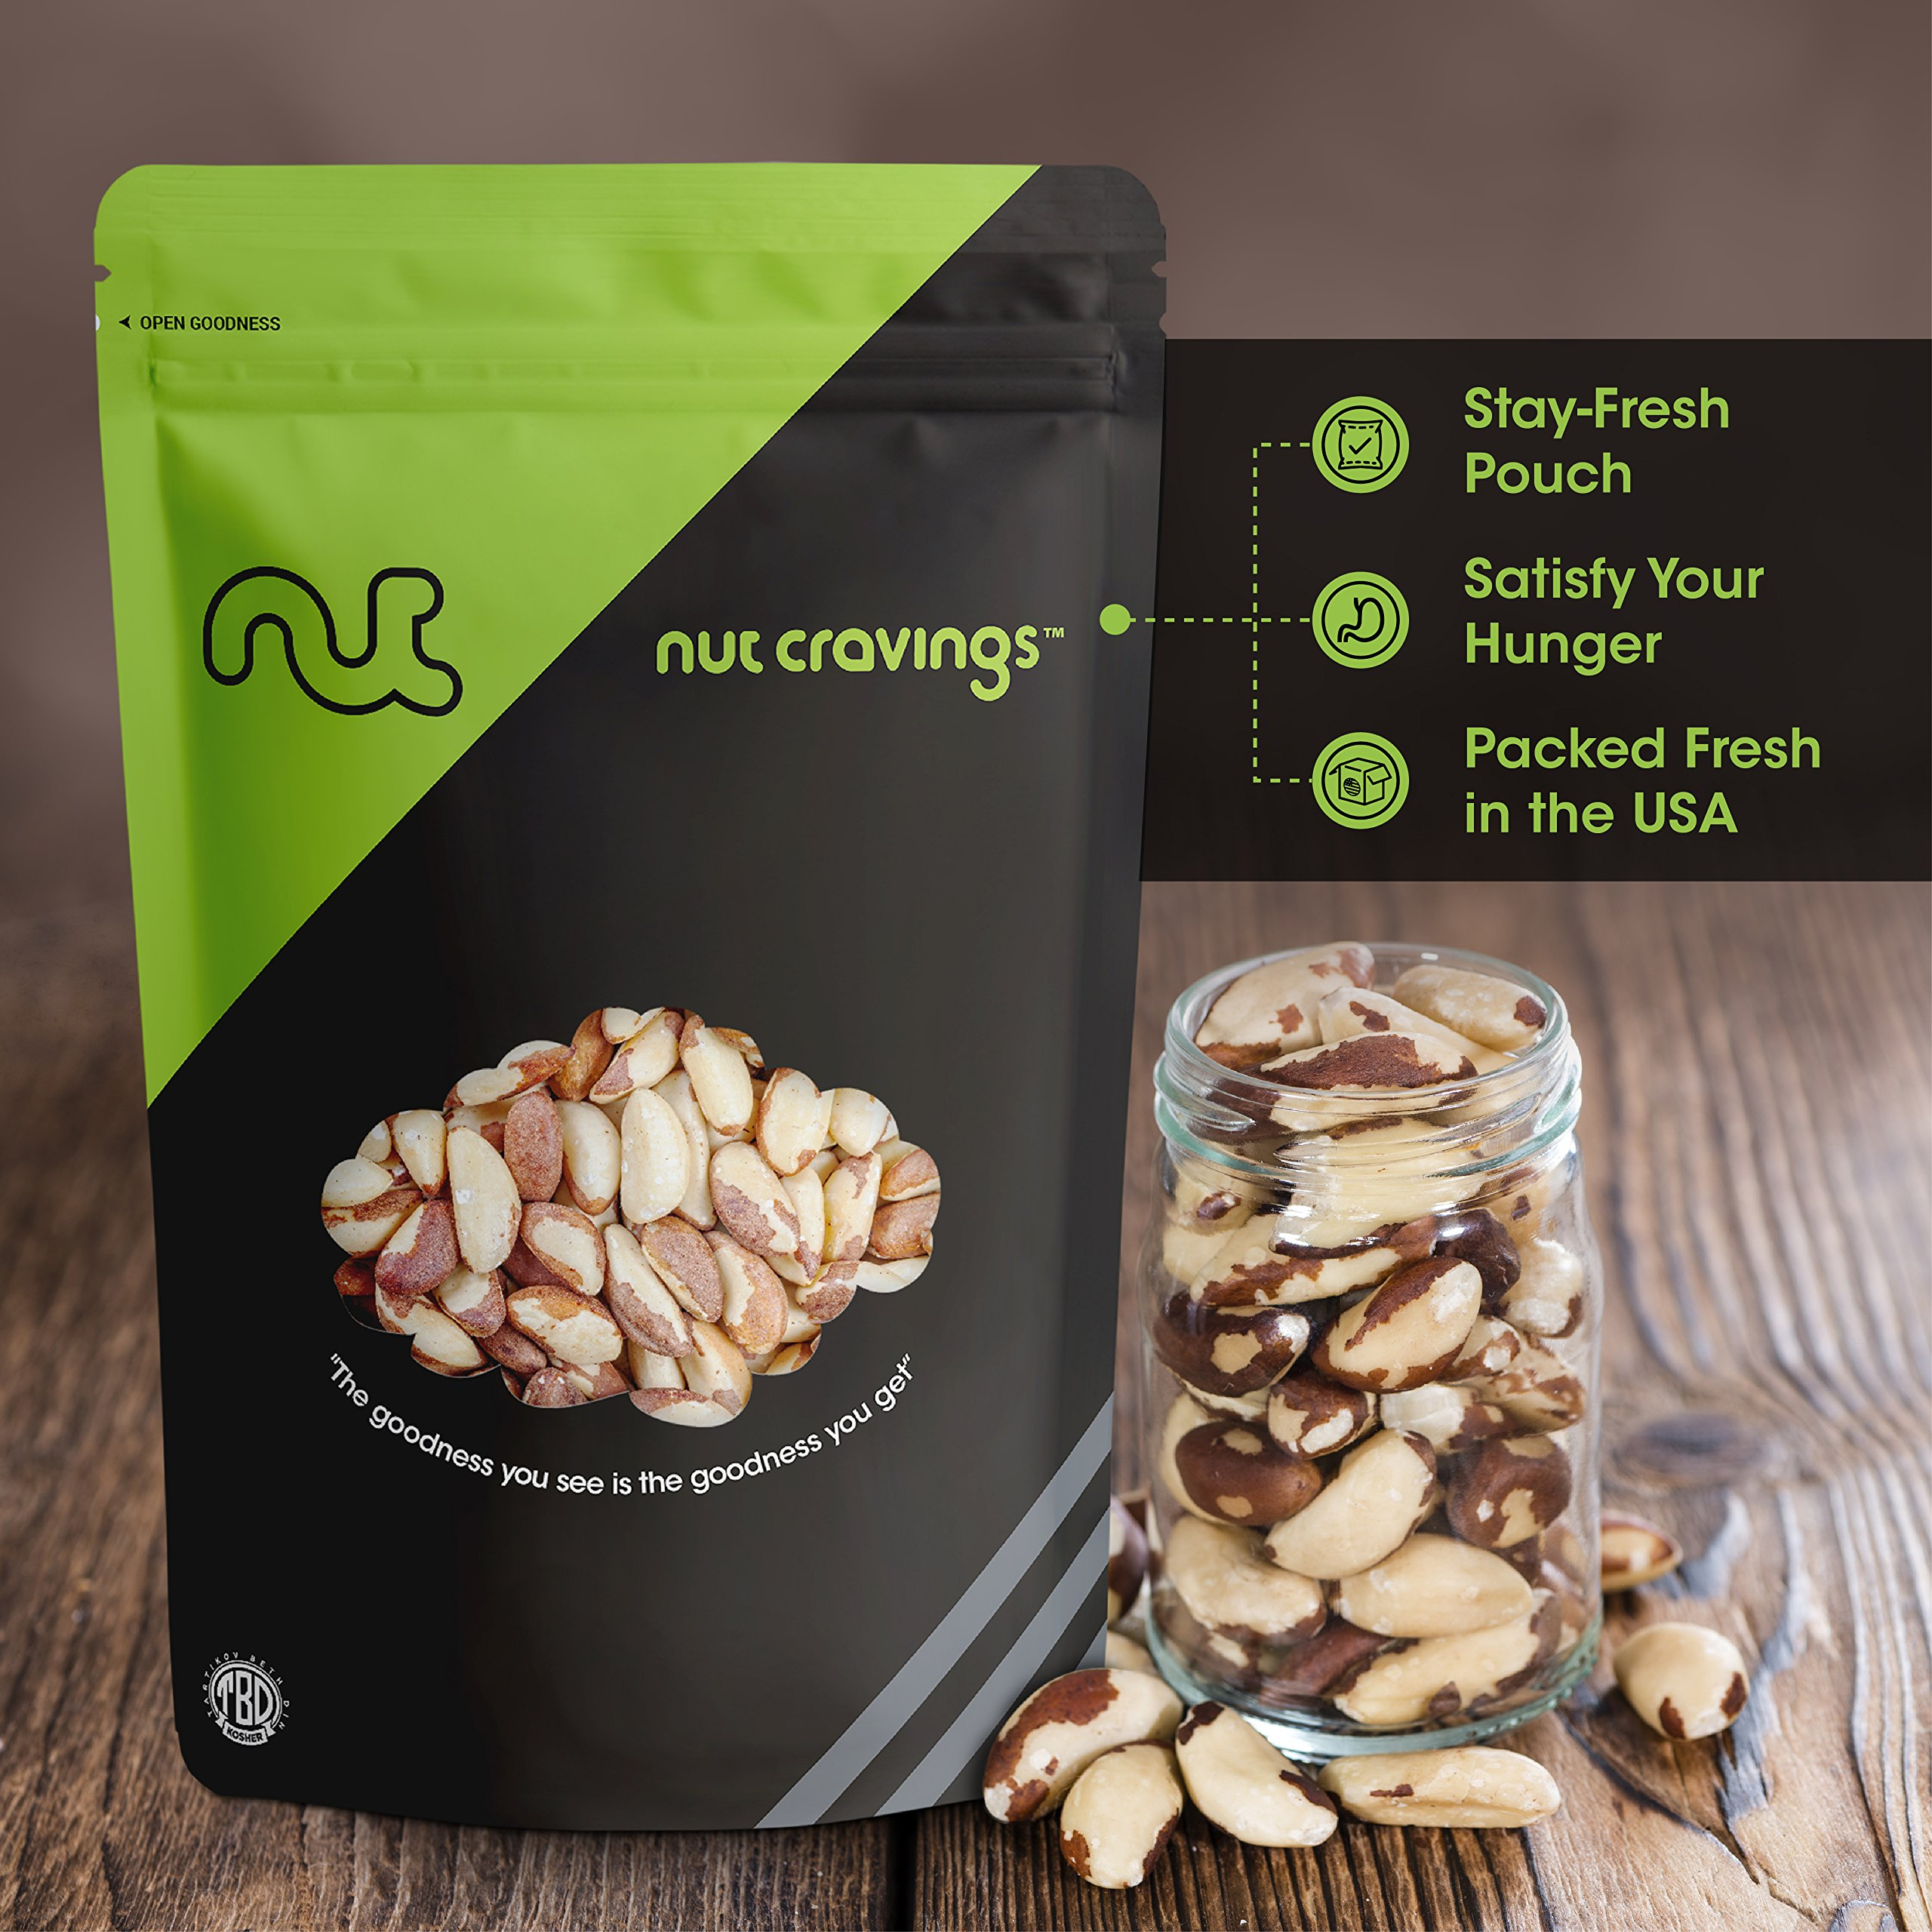 Nut Cravings Raw Compare To Organic Brazil Nuts (3 Pounds) – Whole, Unsalted, No Shell Brazilian Nuts – 48 Ounce by Nut Cravings (Image #6)